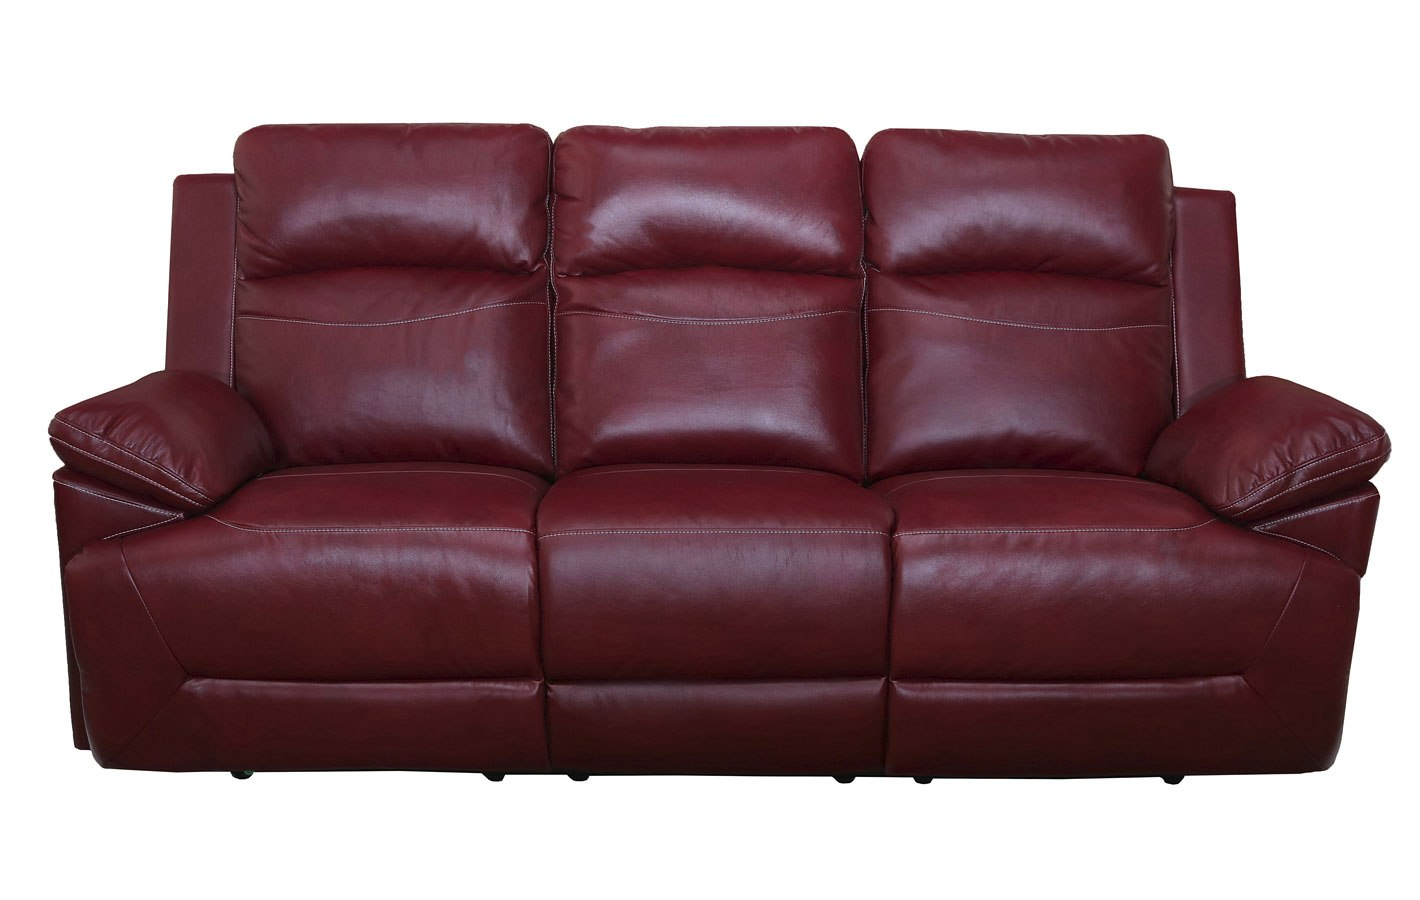 Cortez Dual Reclining Sofa Red By New Classic Furniture